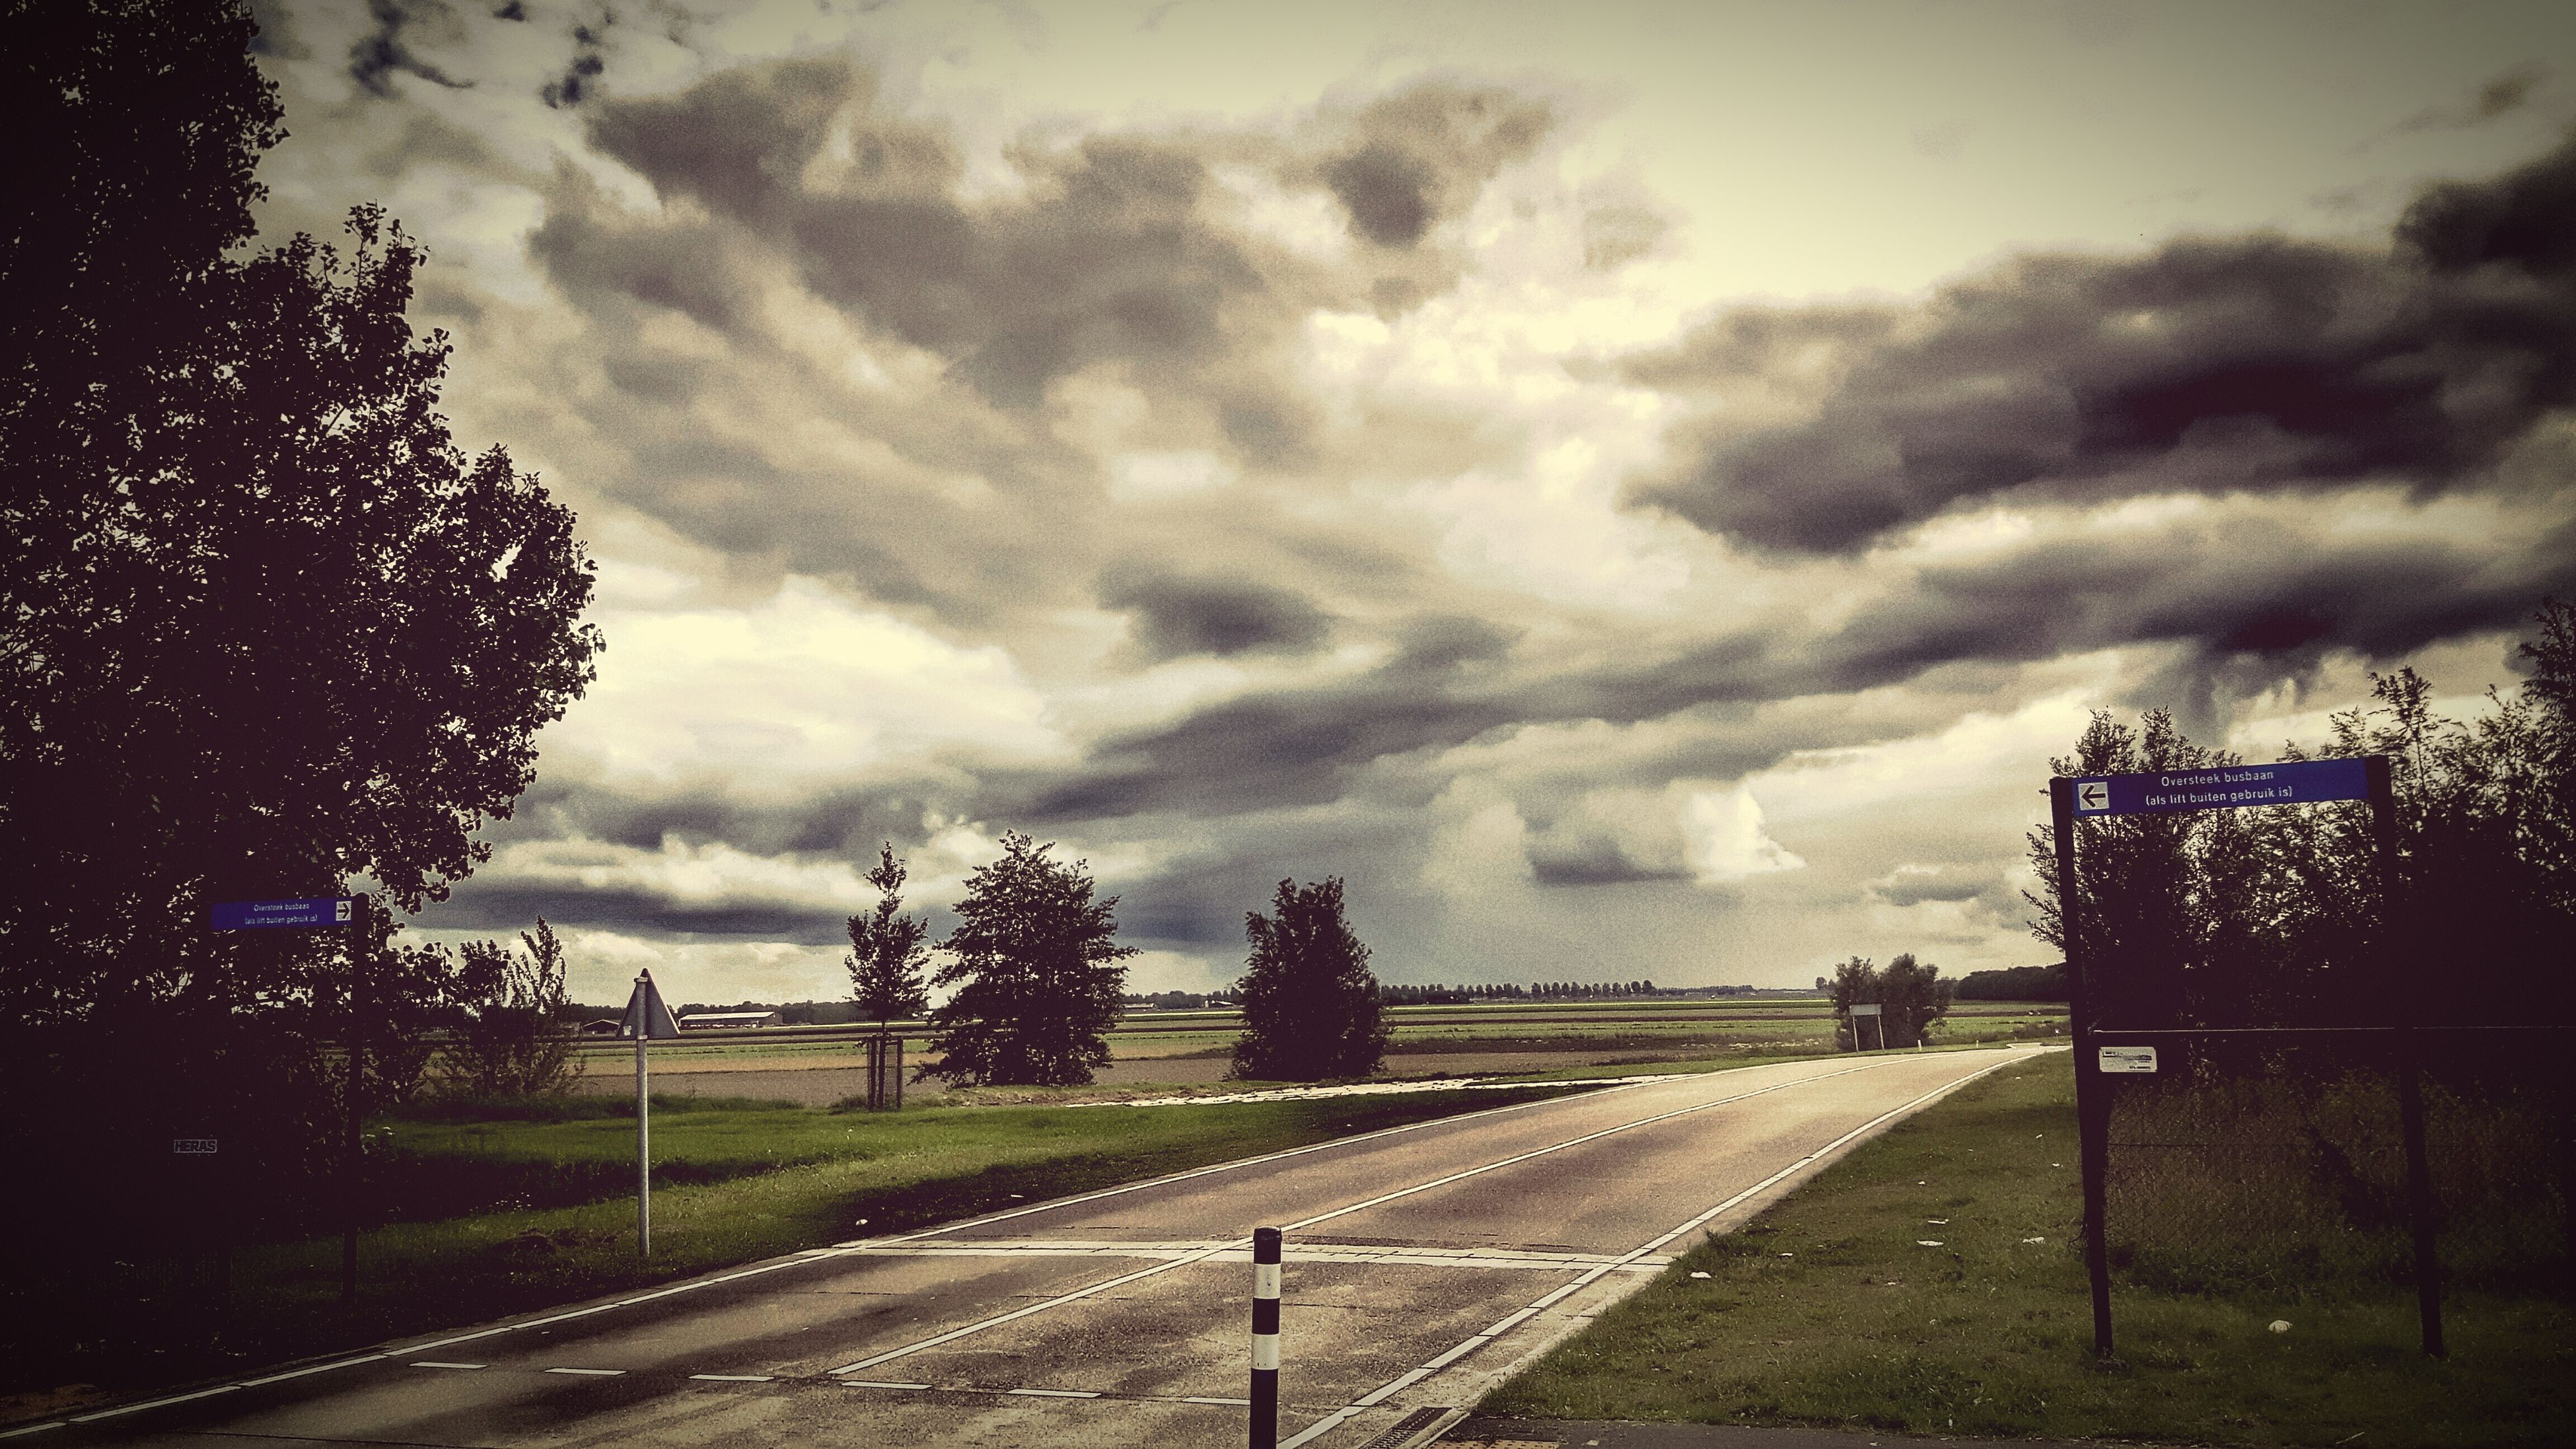 sky, cloud - sky, cloudy, tree, road, the way forward, transportation, cloud, field, weather, landscape, overcast, tranquility, nature, street, tranquil scene, diminishing perspective, dusk, storm cloud, outdoors